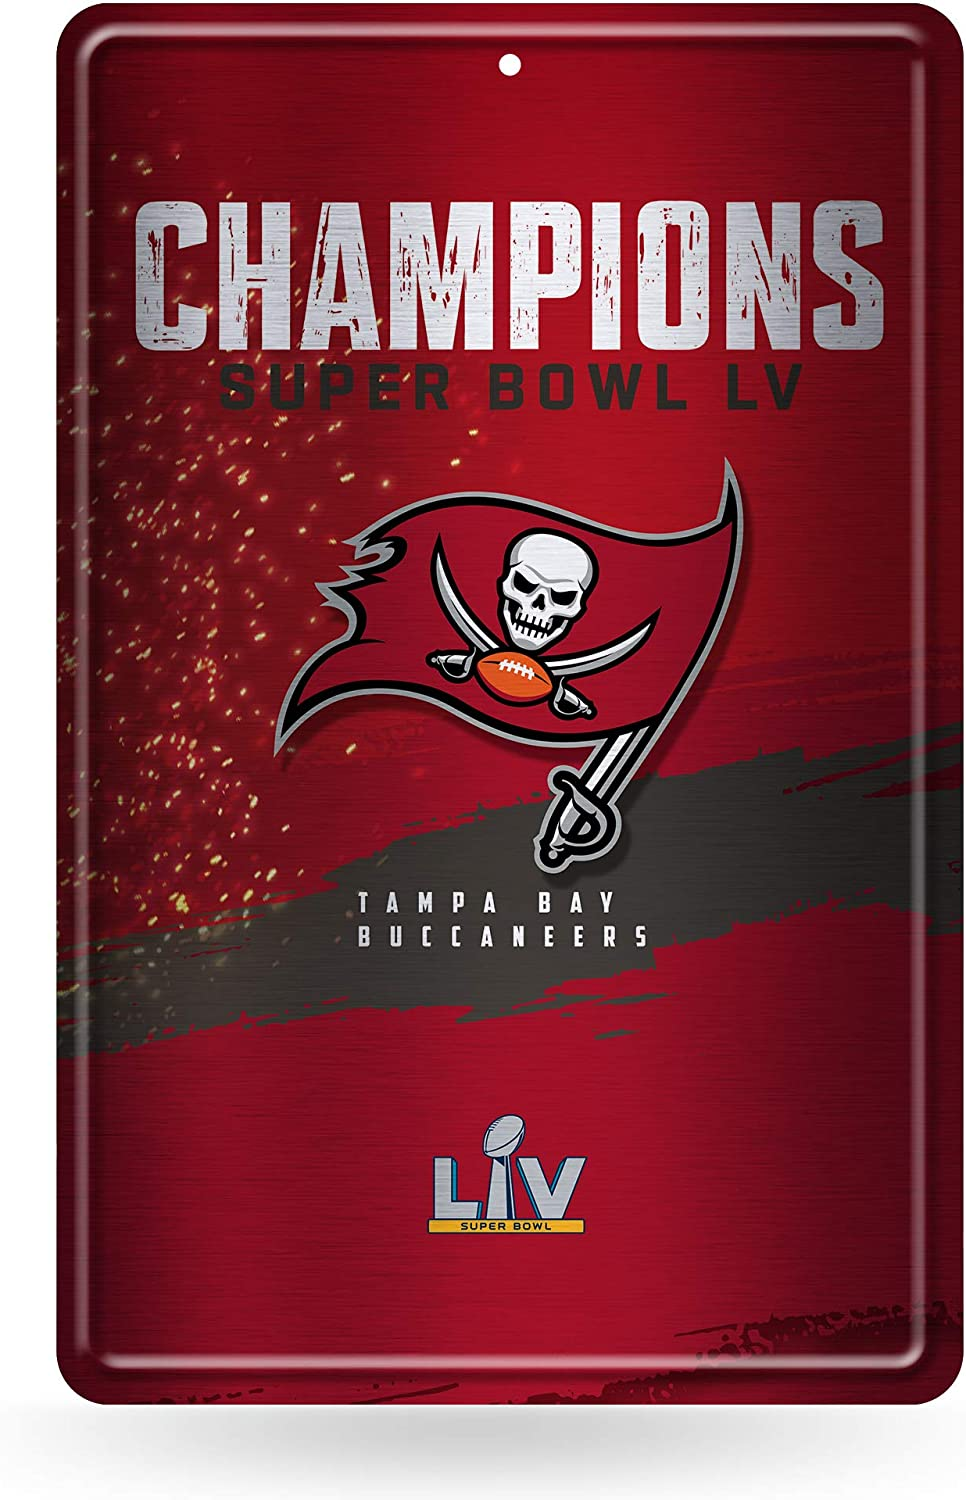 Rico Industries NFL Tampa Bay Buccaneers Super Bowl LV Champions Large Embossed Metal Sign, 11-inches by 17-inches